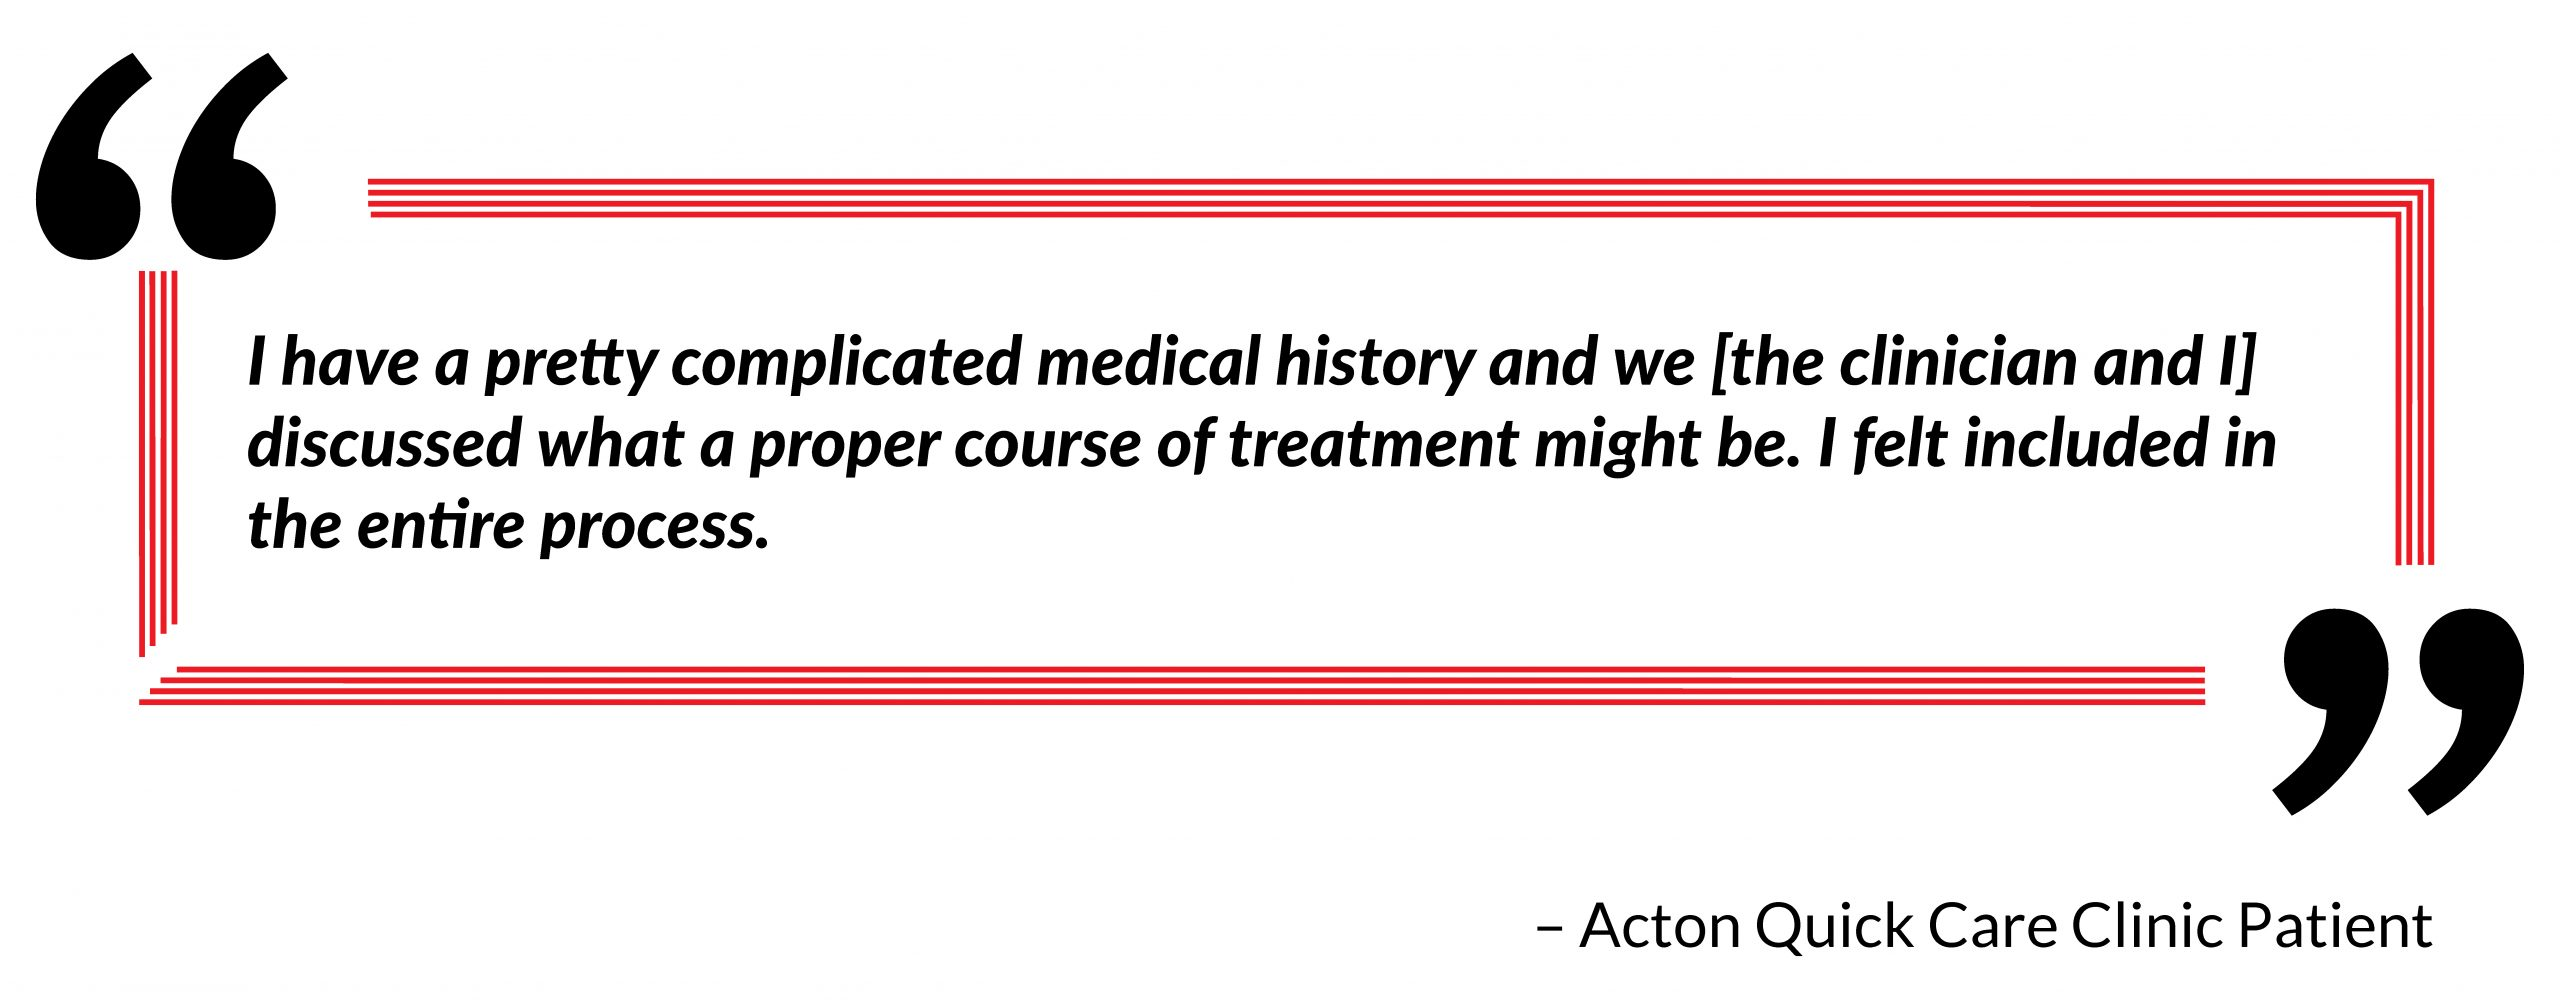 patient quote and testimonial on practice visit